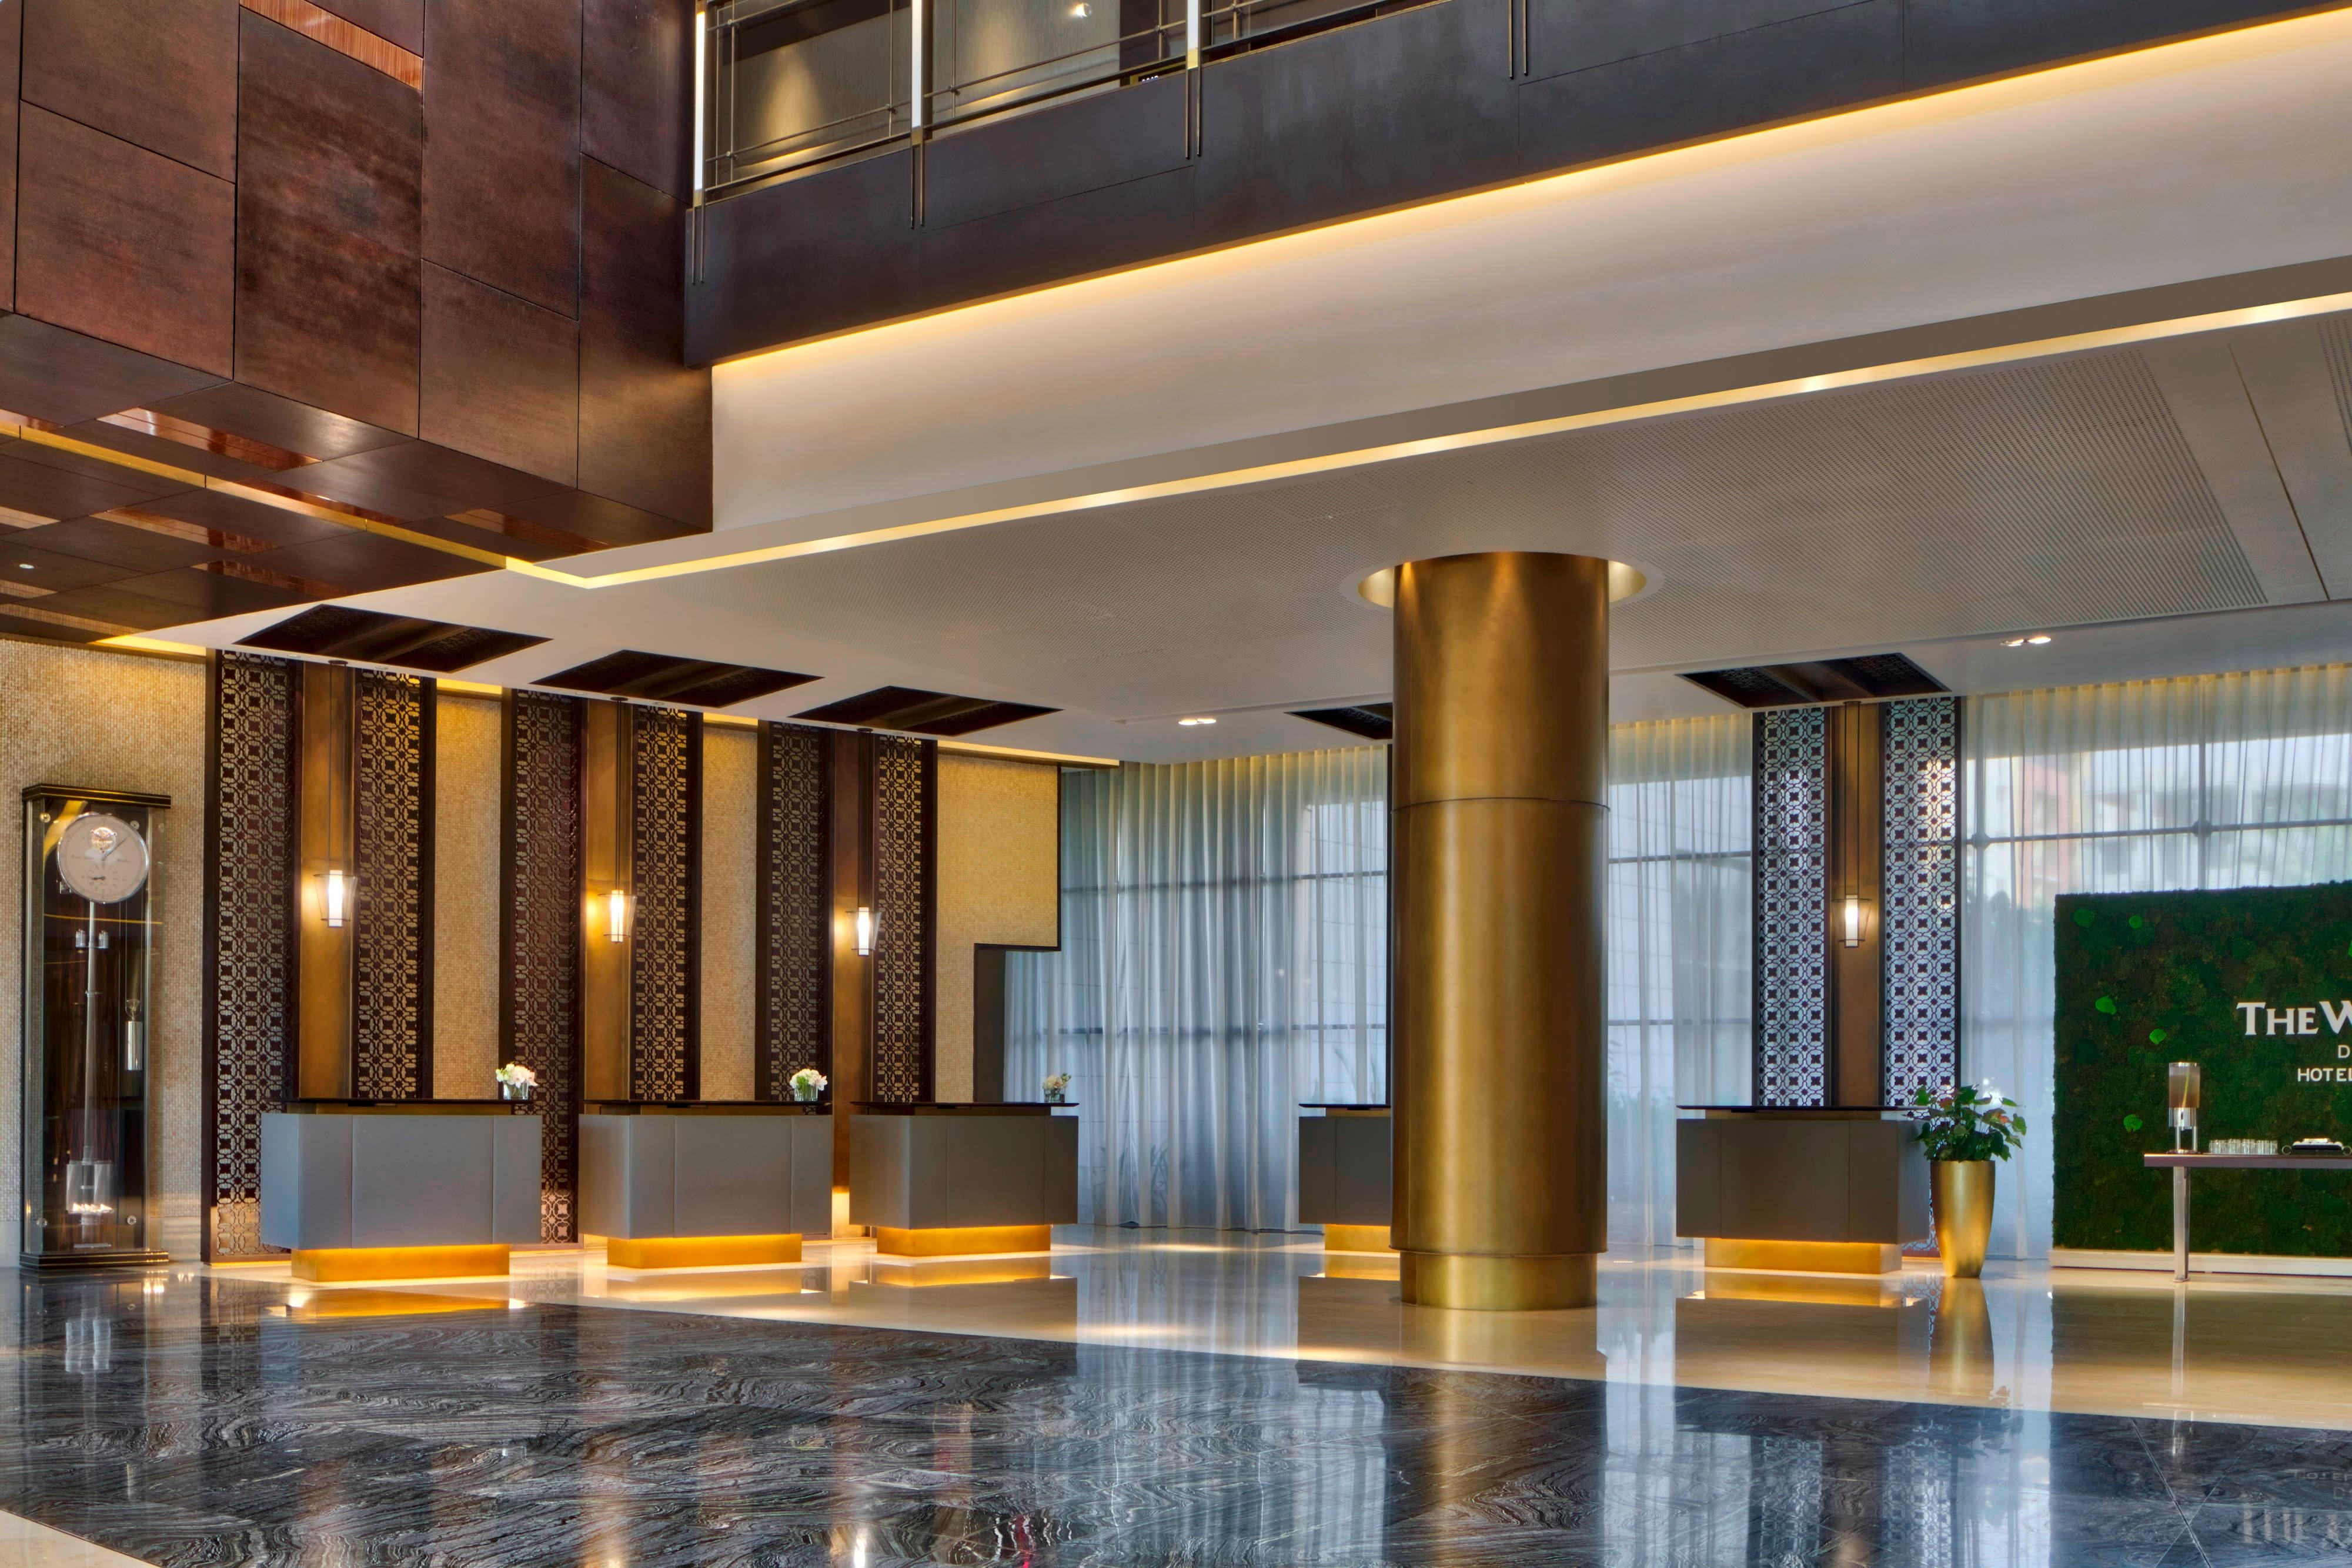 The Westin Doha Hotel & Spa welcomes you to Doha's Downtown Sanctuary. Our friendly Guest Services team are available at the reception desk 24/7.